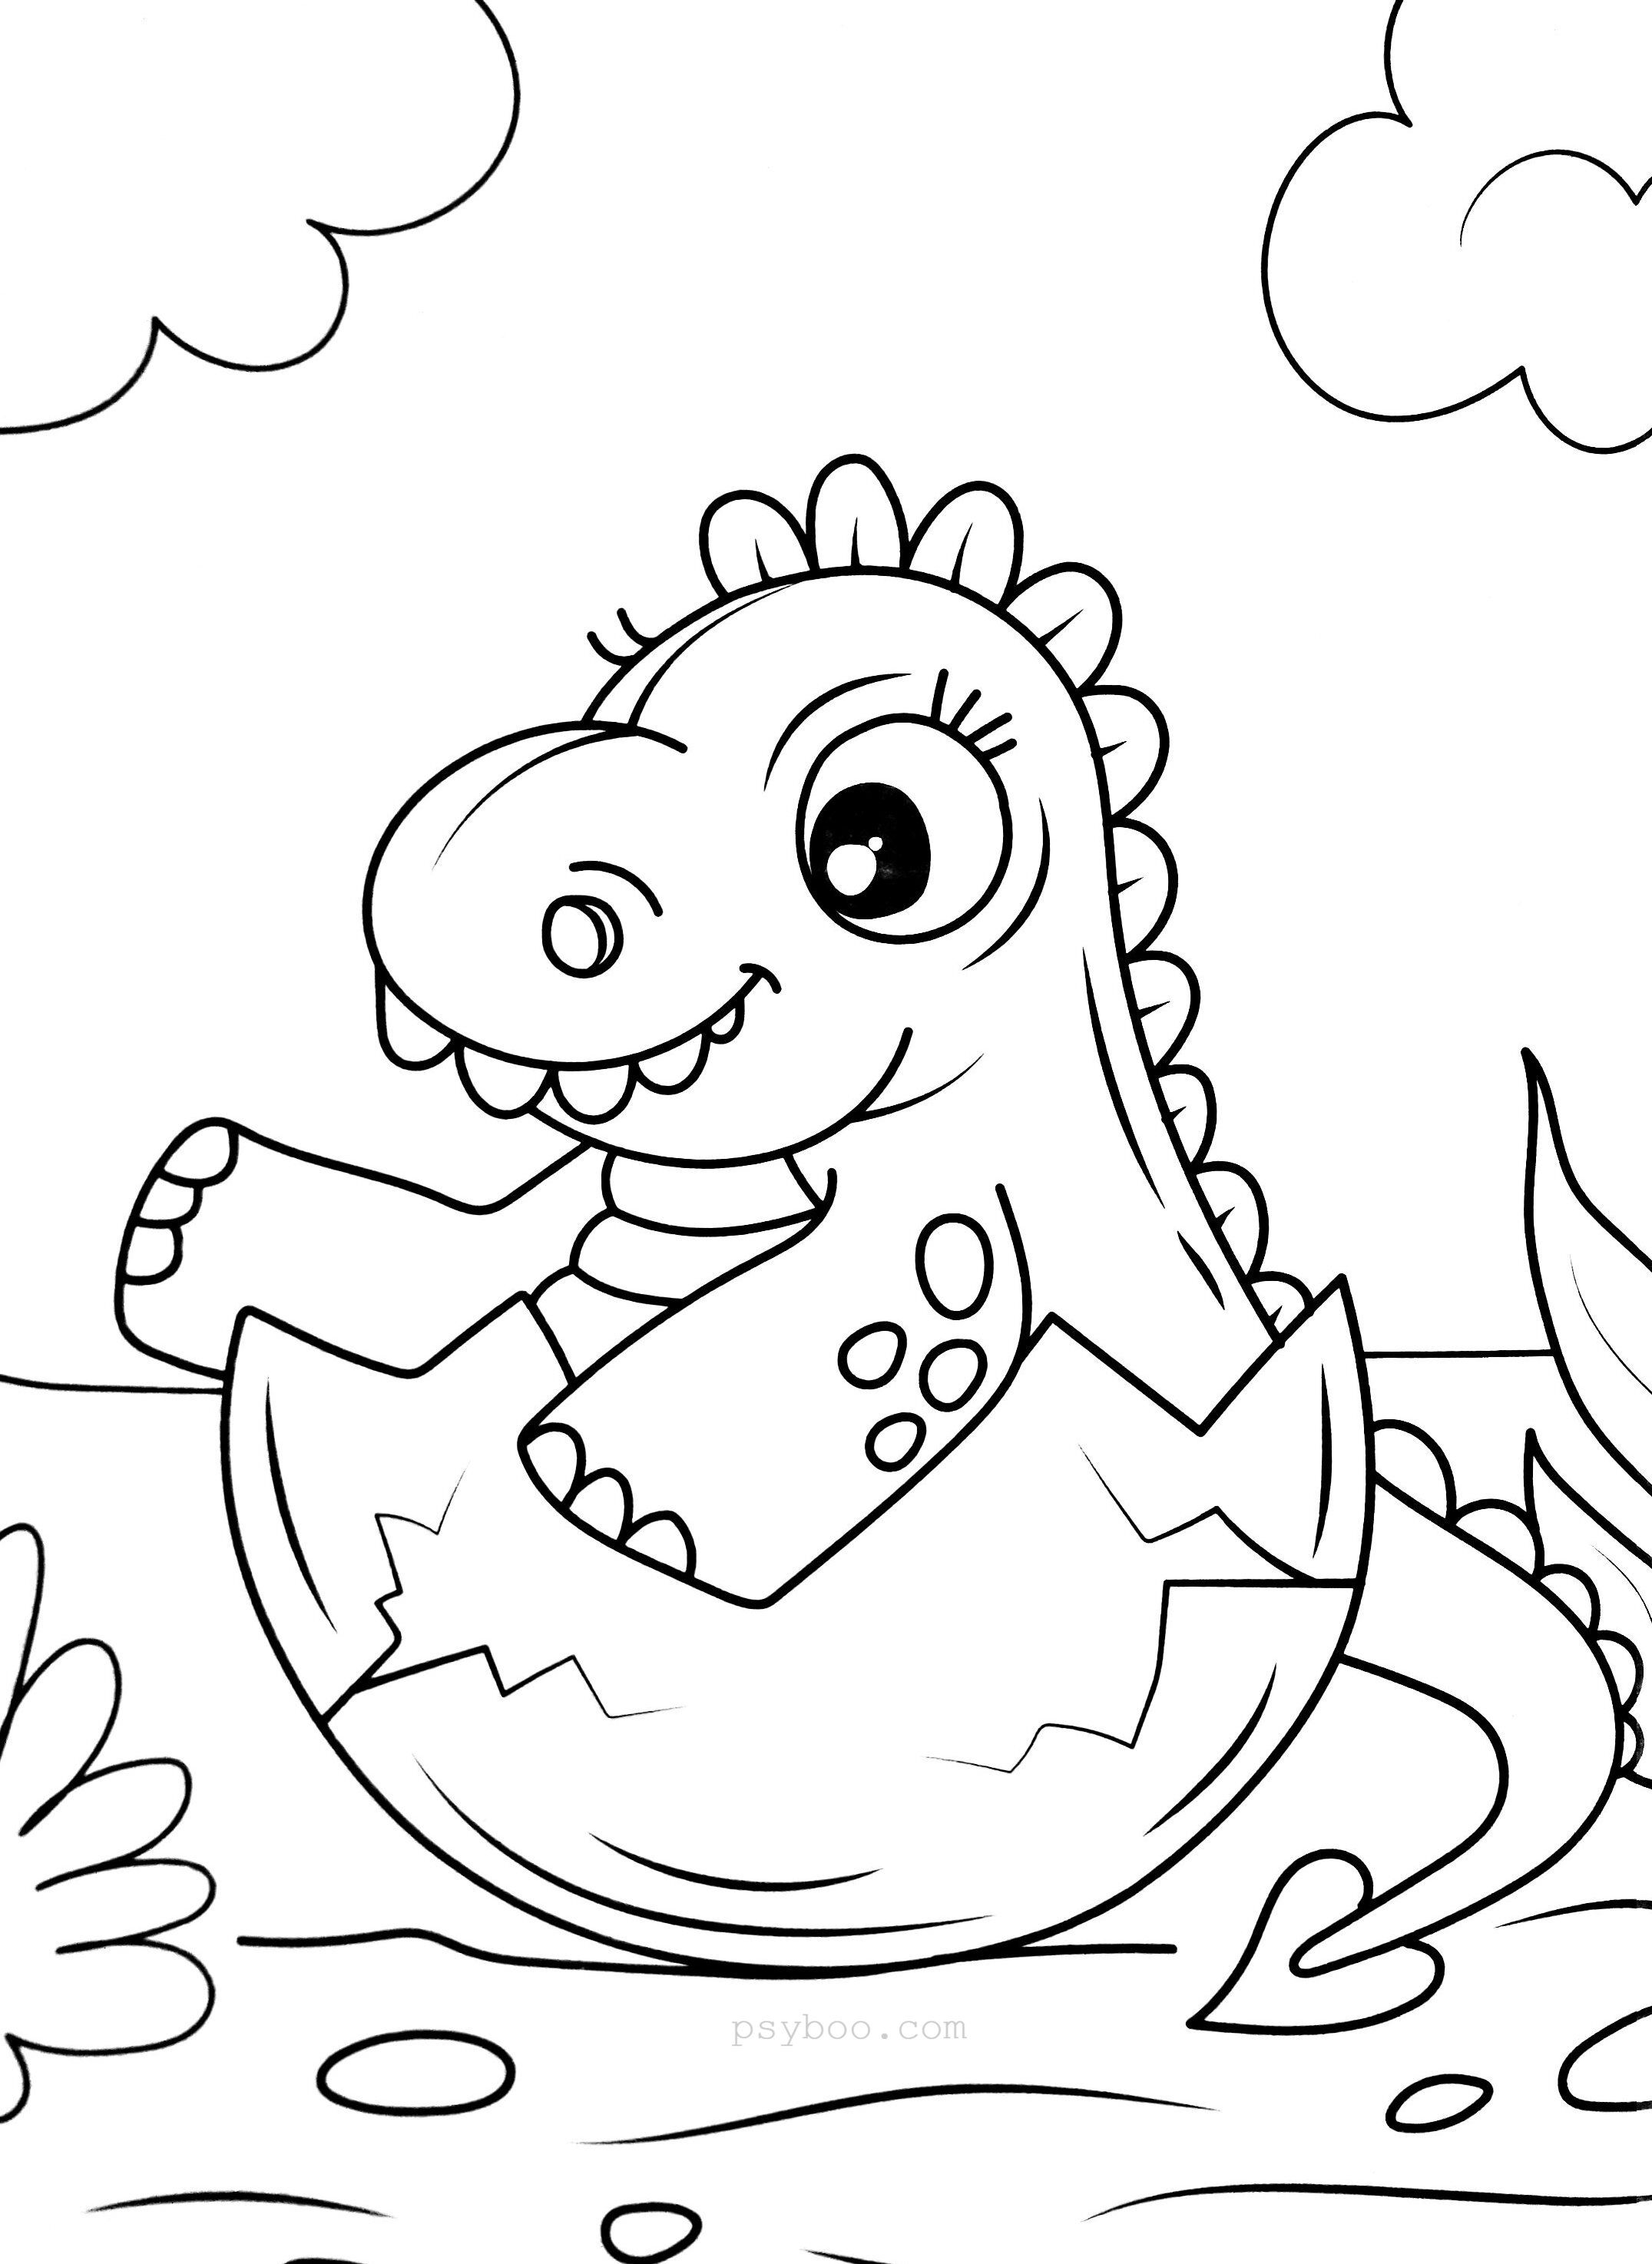 baby dinosaur coloring pages cute baby dinosaur coloring pages at getdrawings free pages baby dinosaur coloring